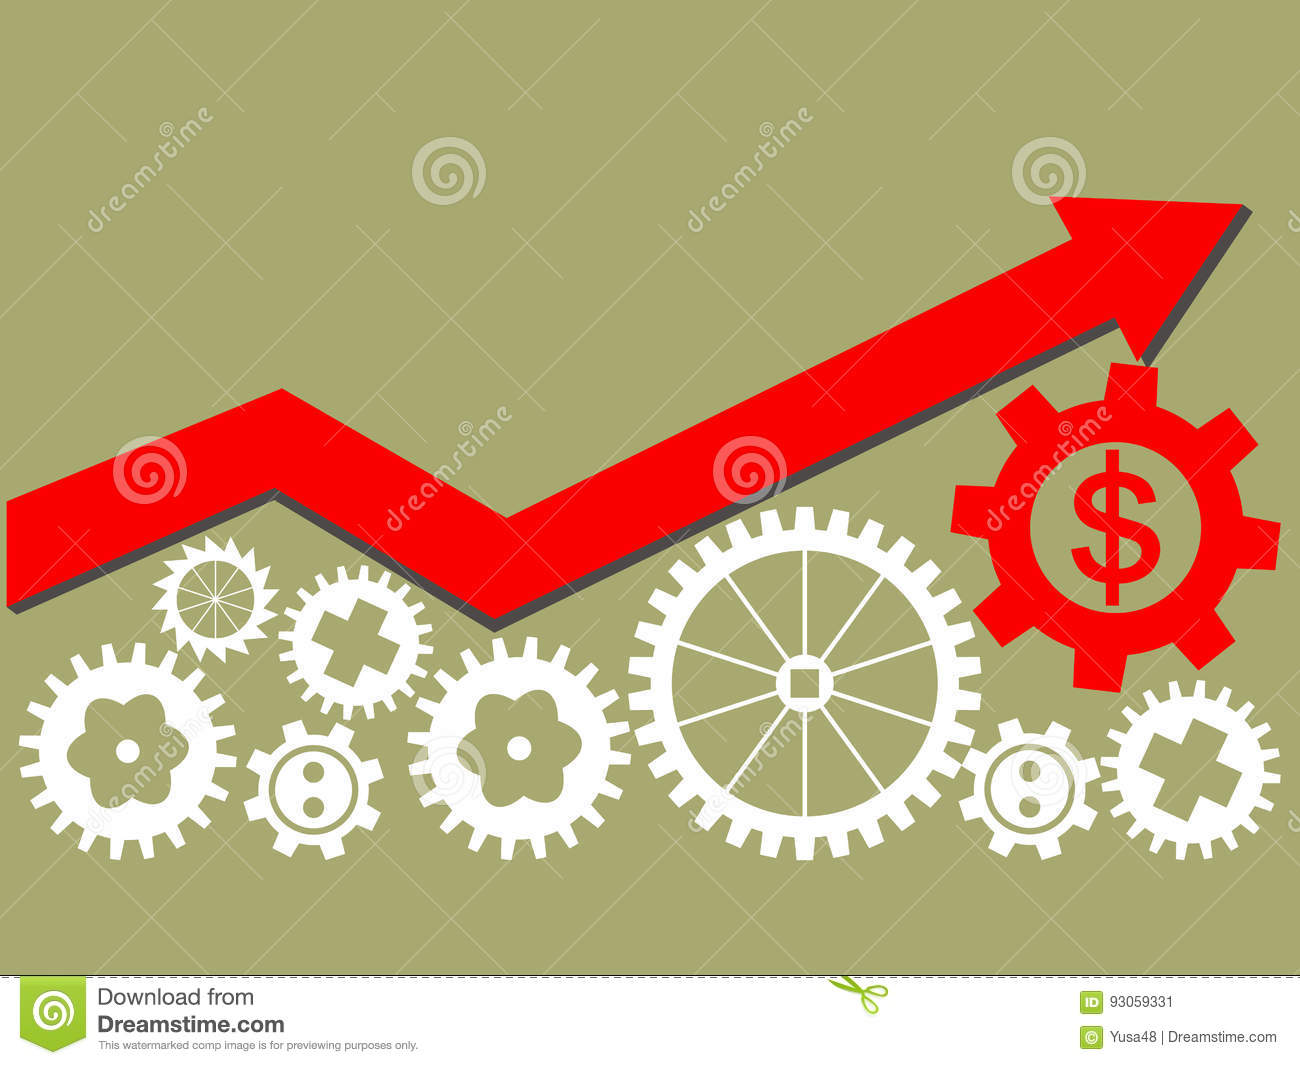 Growing Economy And Industry Represented By Gears As A Symbol Of